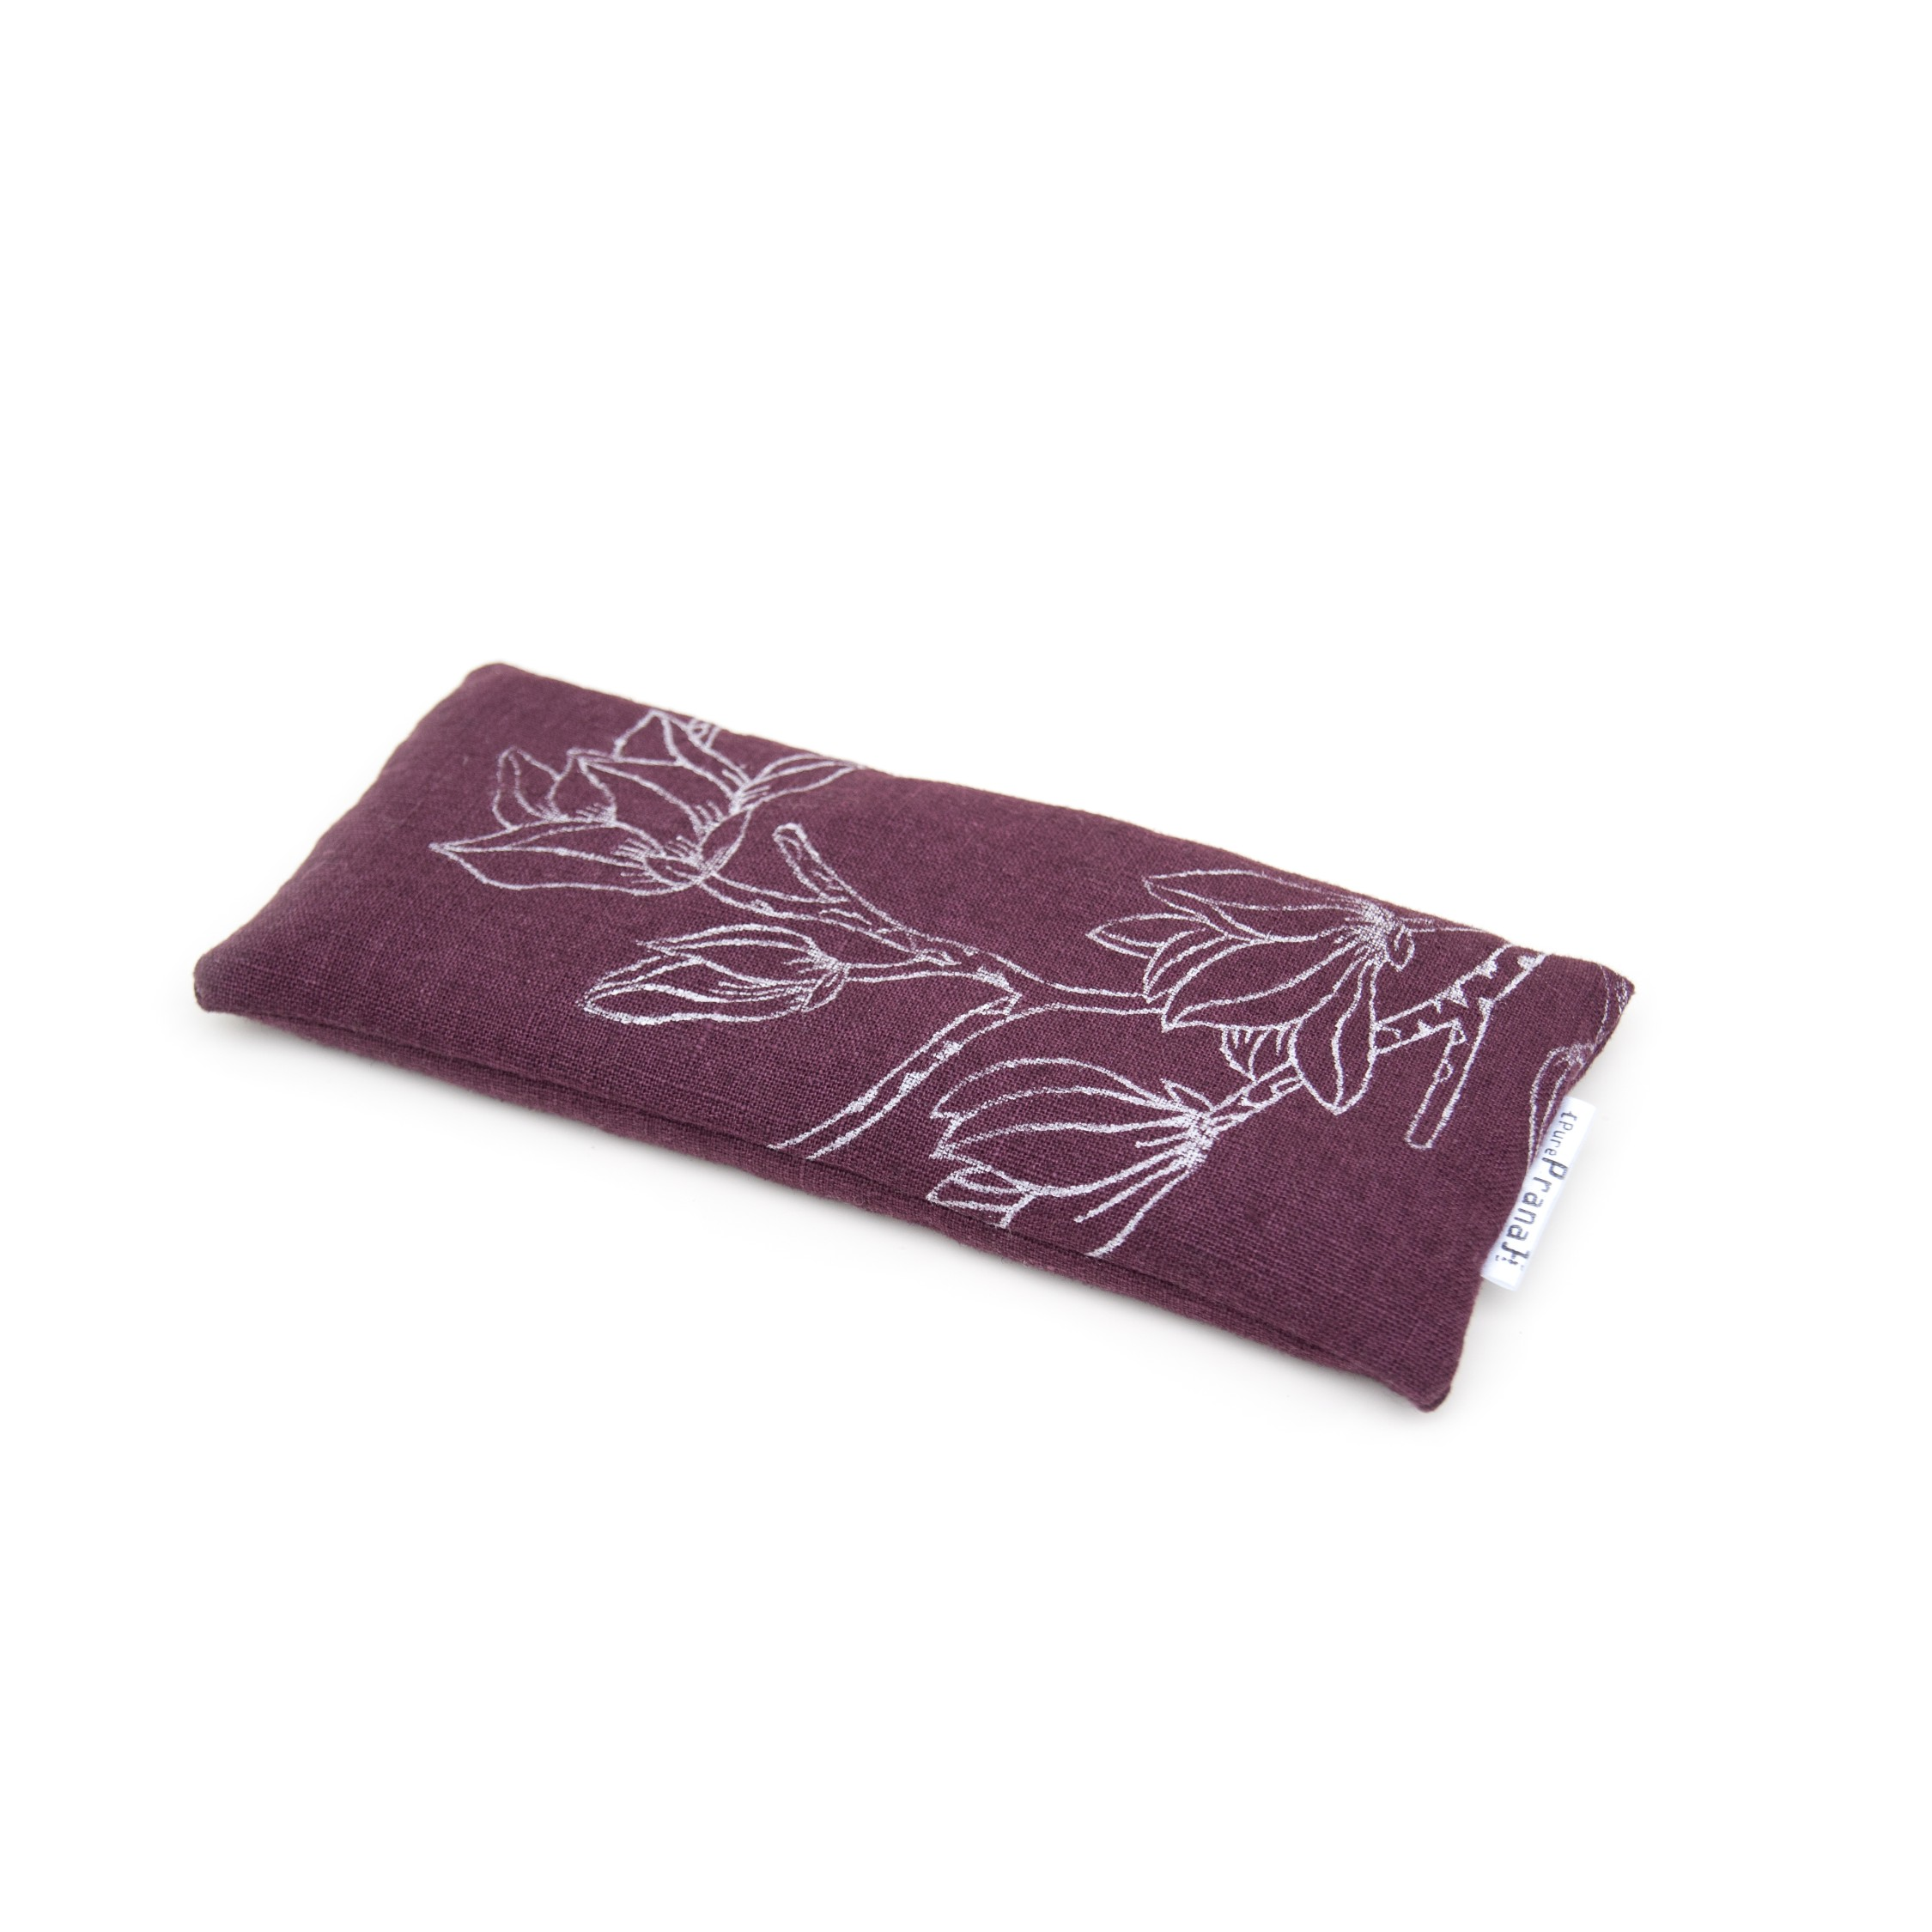 Lavender eye pillow Magnolia in eggplant